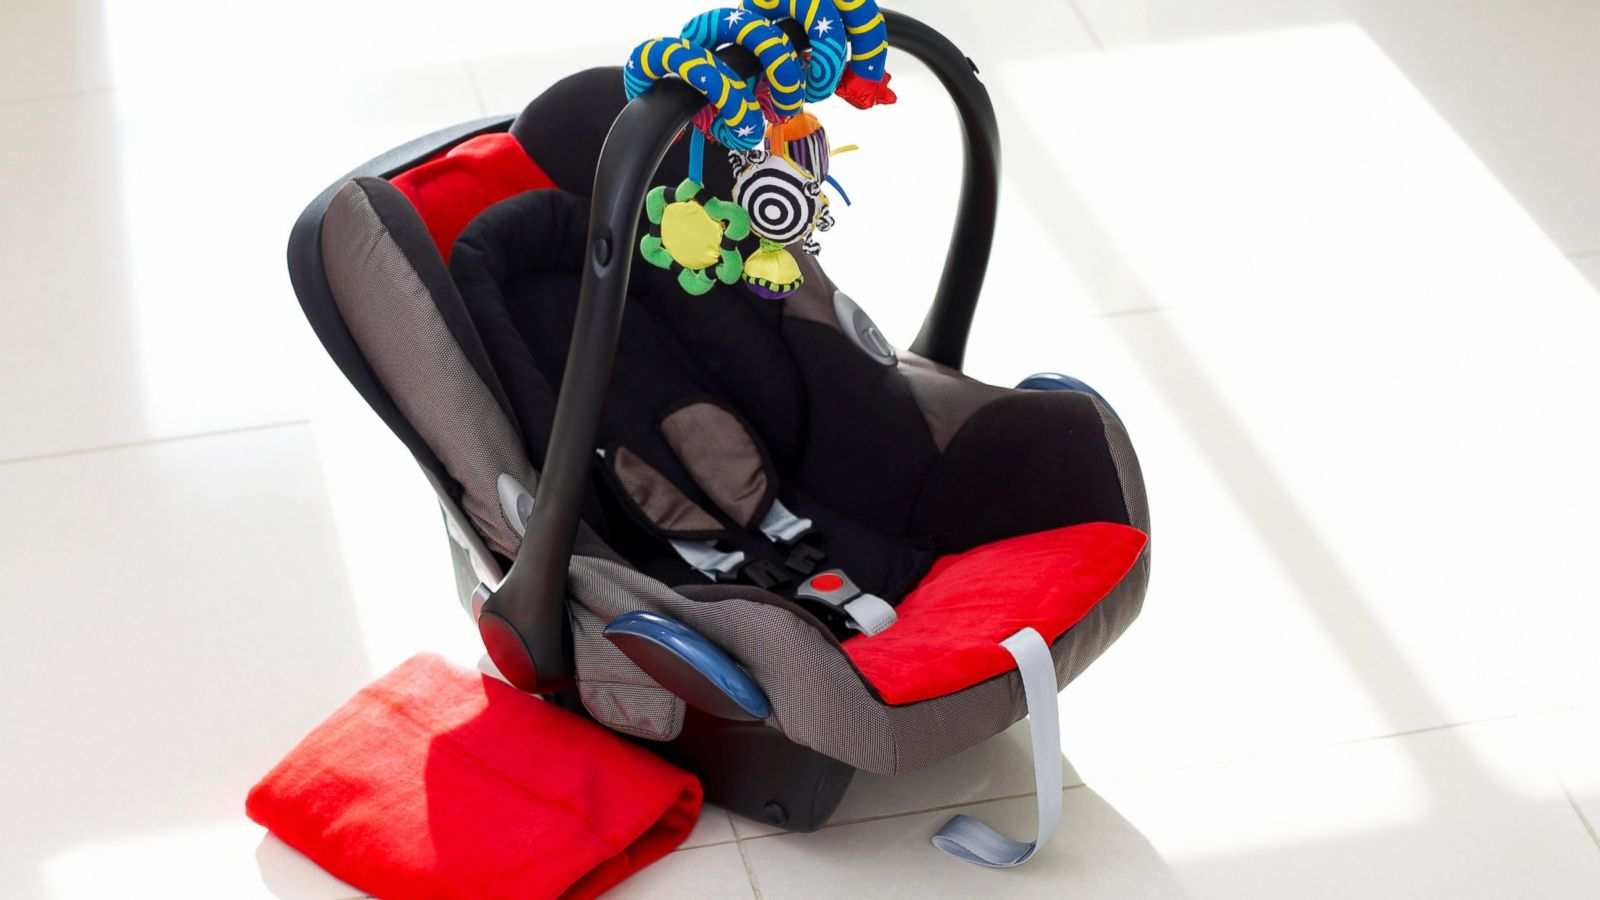 Best rated cheap convertible car seats 2020 safety